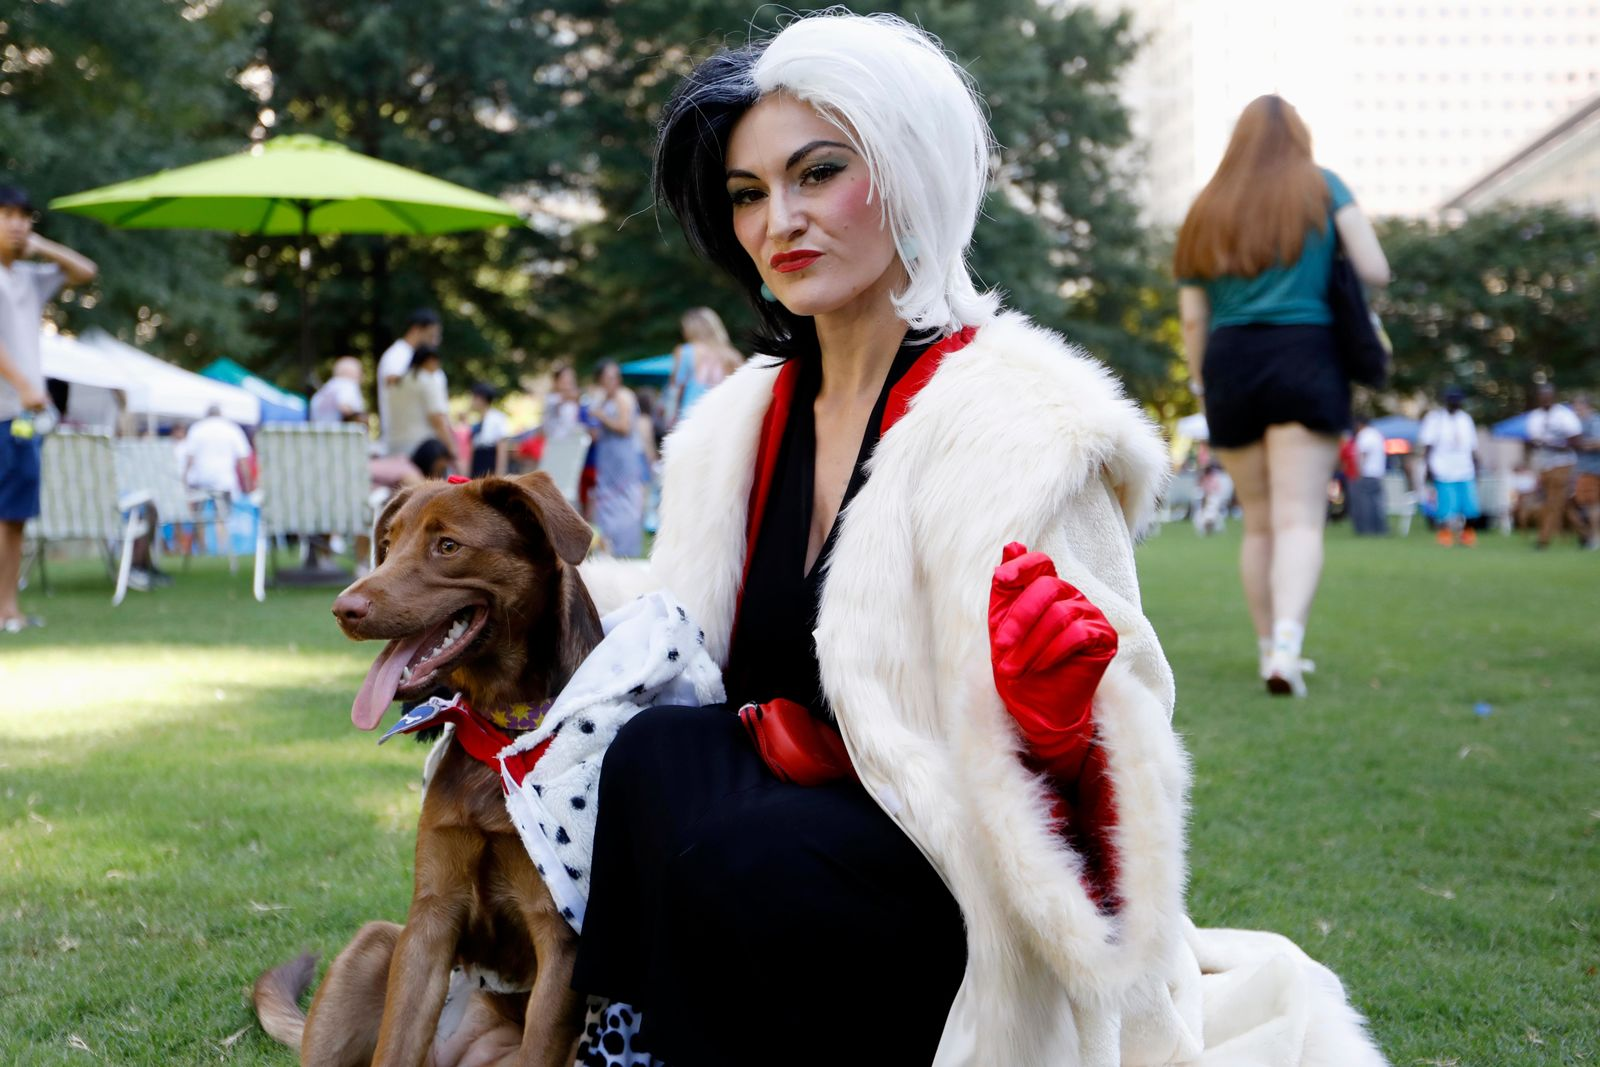 Atlanta-area resident Megan Nelson poses for a photo with her dog Darla during Doggy Con in Woodruff Park, Saturday, Aug. 17, 2019, in Atlanta. Nelson wore a Cruella de Vil costume and dressed her mixed chocolate Labrador Retriever in a Dalmatian outfit. The pair won the costume contest award for best dog and owner combination. (AP Photo/Andrea Smith)